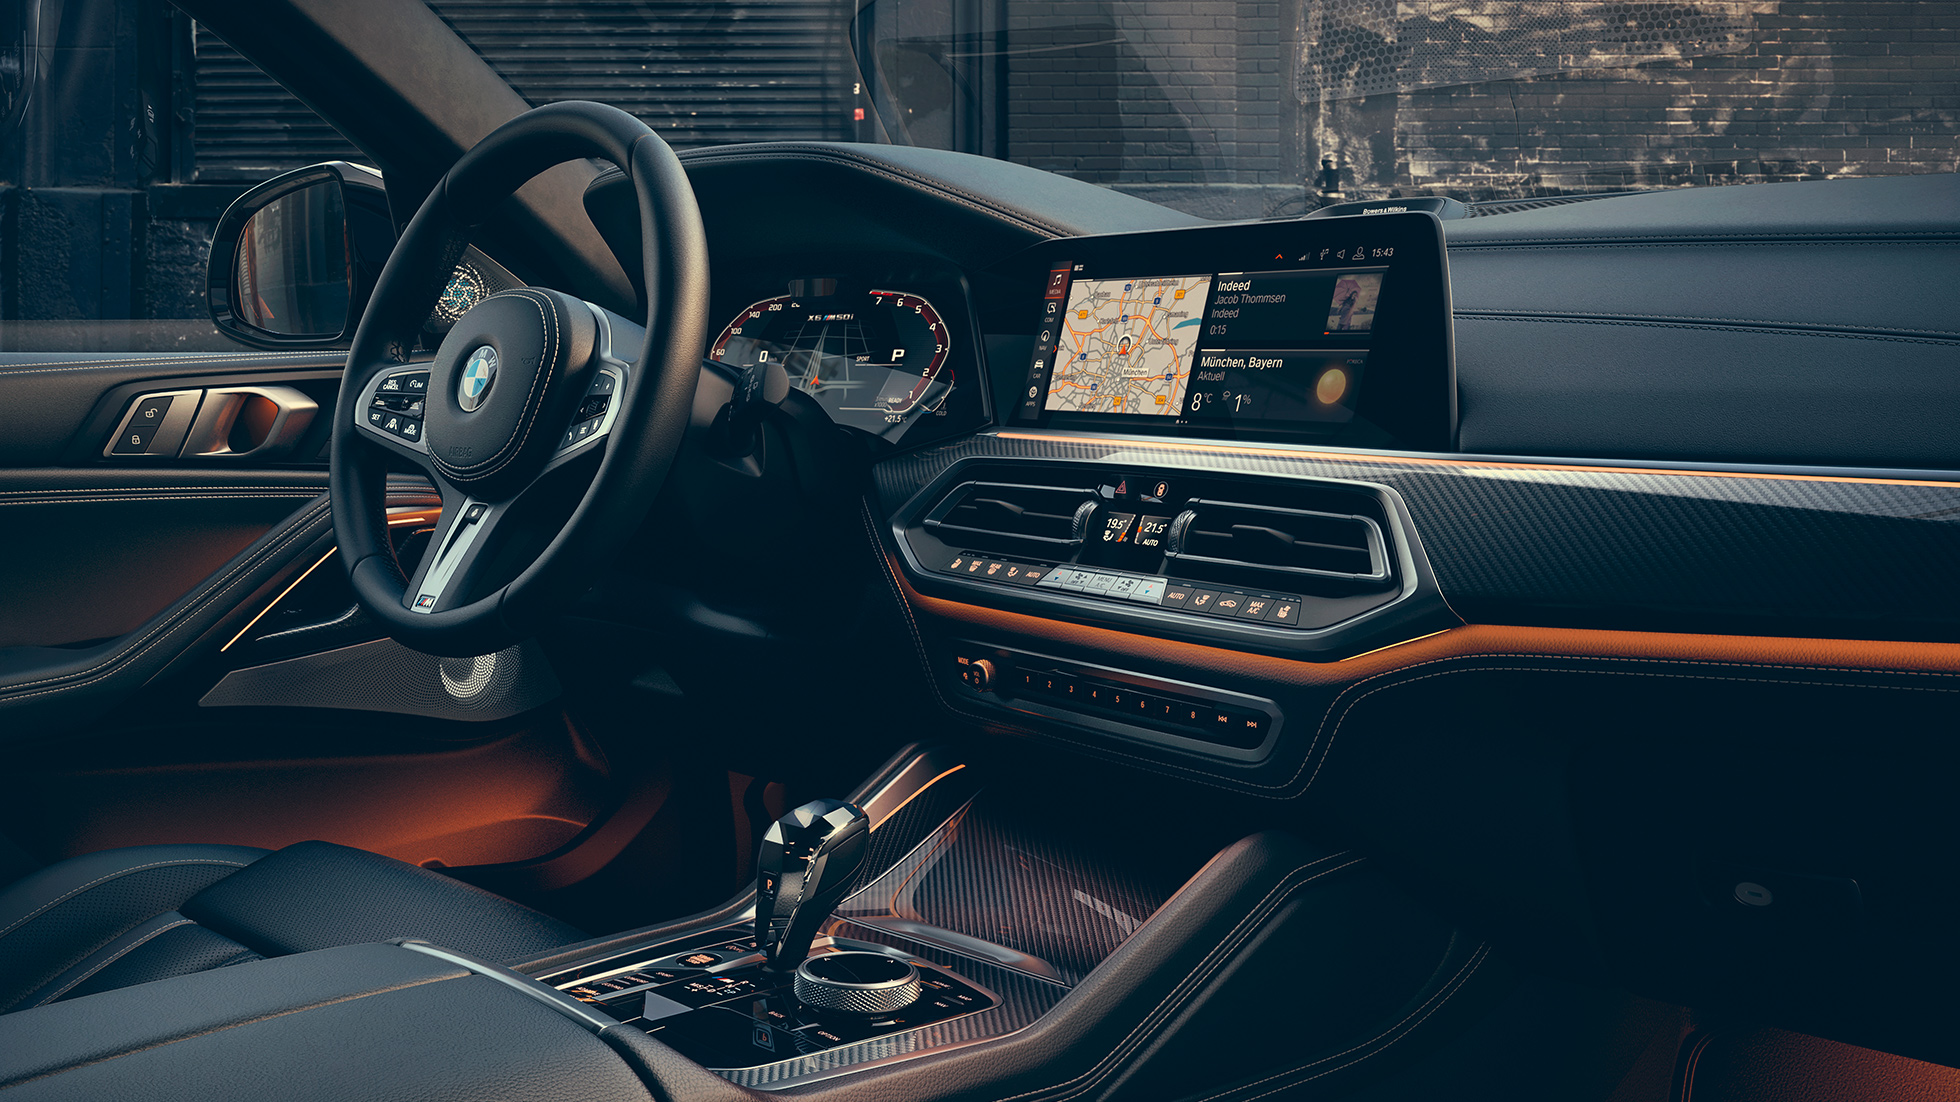 The interior of the BMW X6.